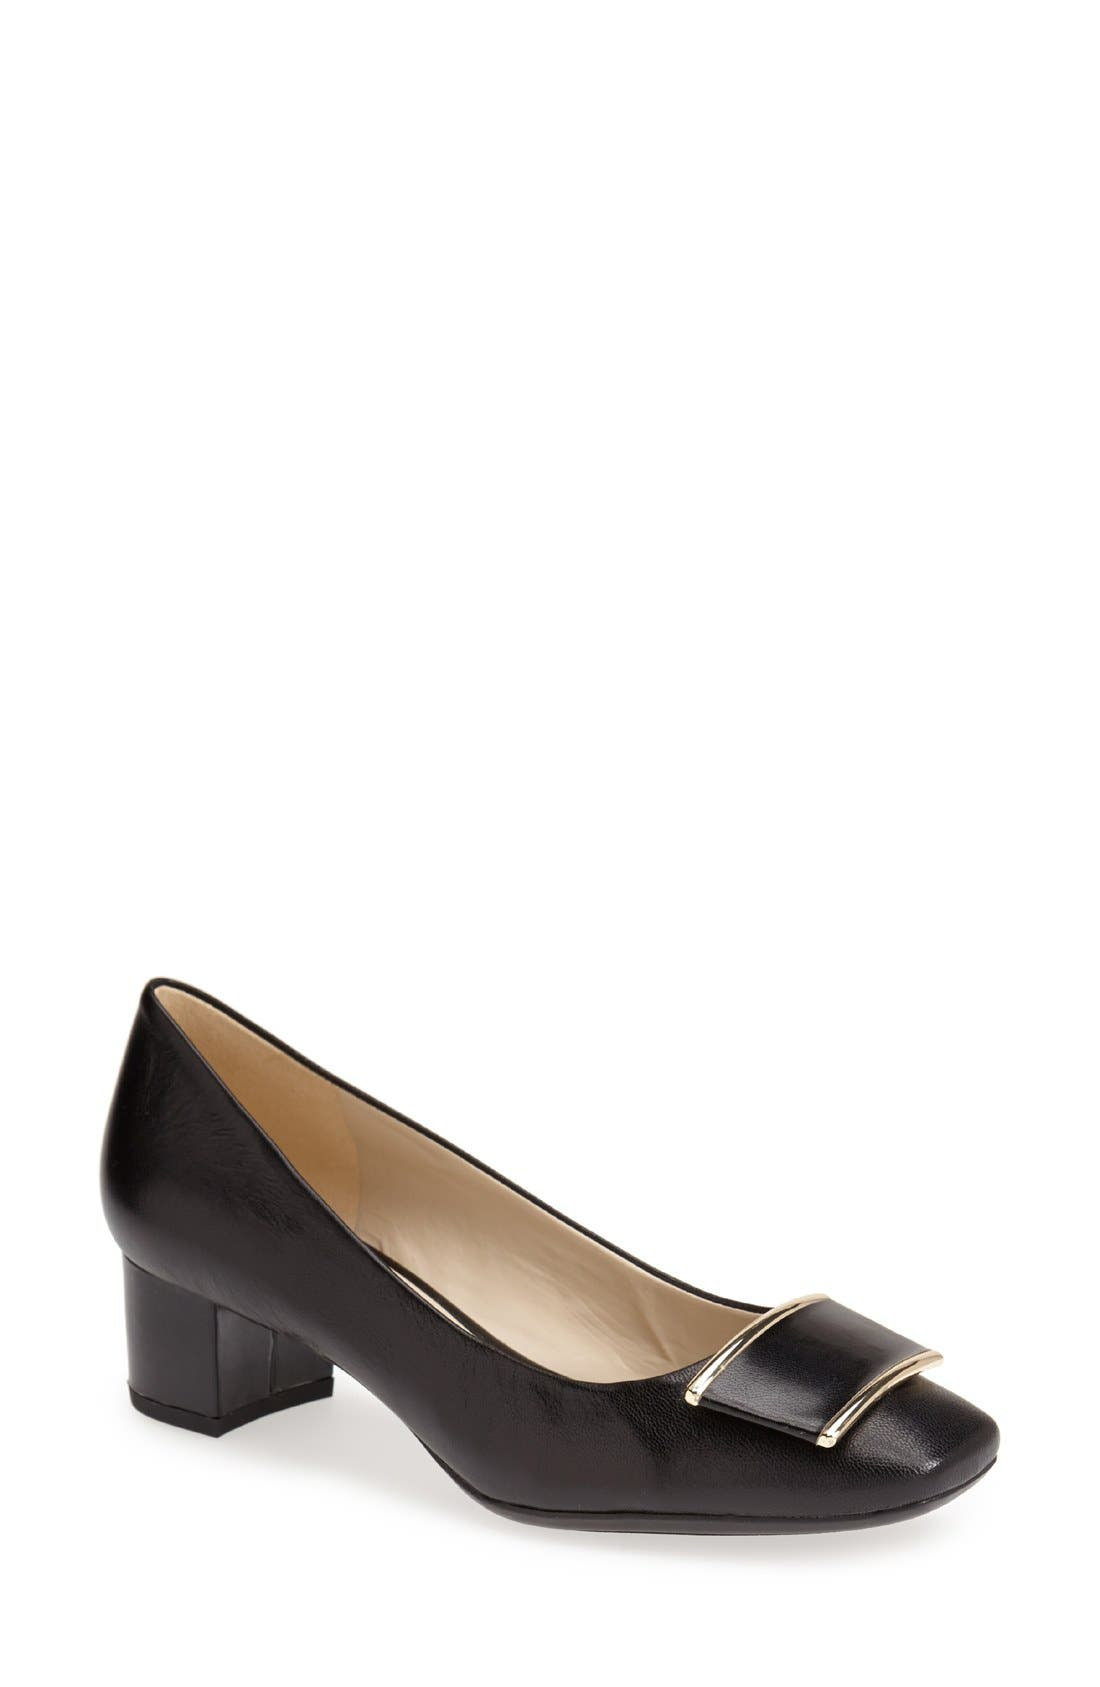 Alternate Image 1 Selected - Naturalizer 'Faulkner' Leather Pump (Women)